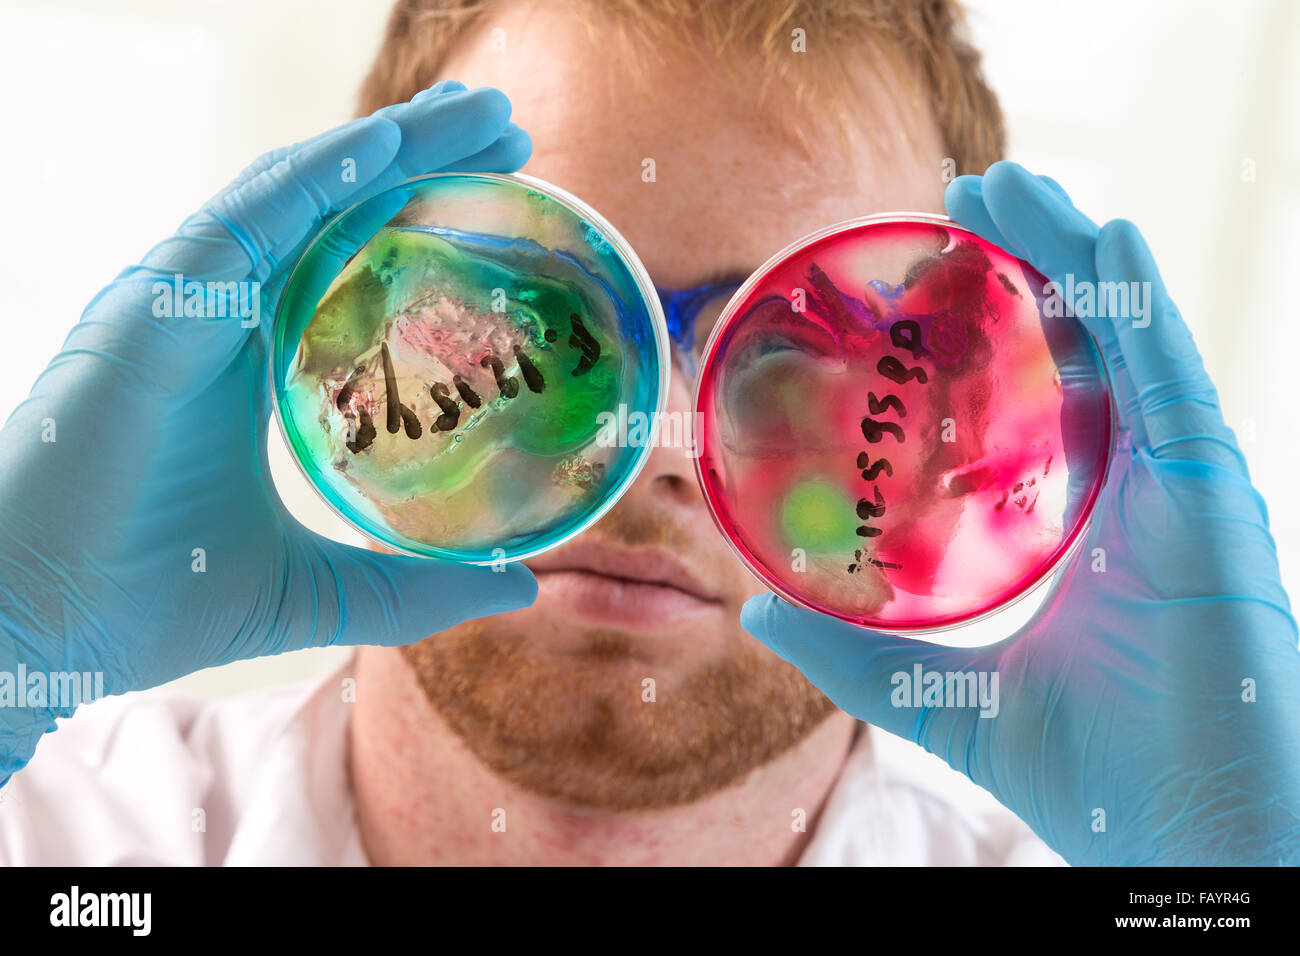 Health care and biotechnology concept. - Stock Image